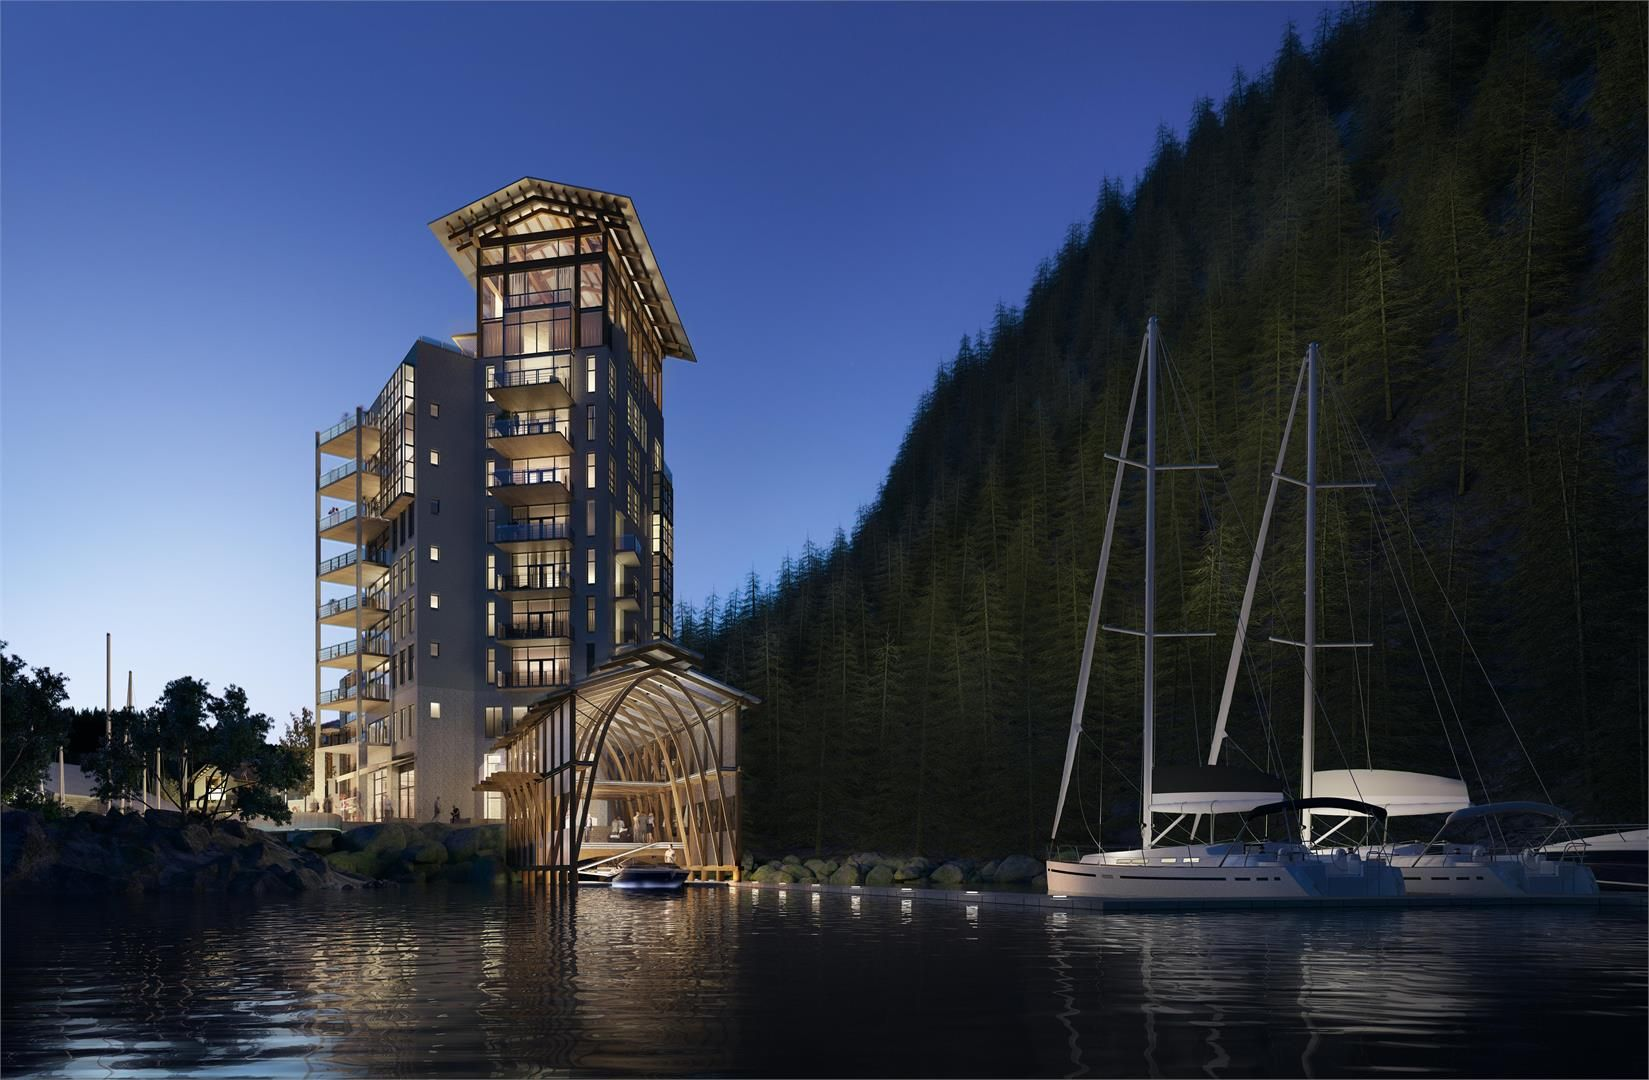 Main Photo: 6707 Nelson Avenue, West Vancouver, BC in West Vancouver: Horseshoe Bay WV Condo for sale